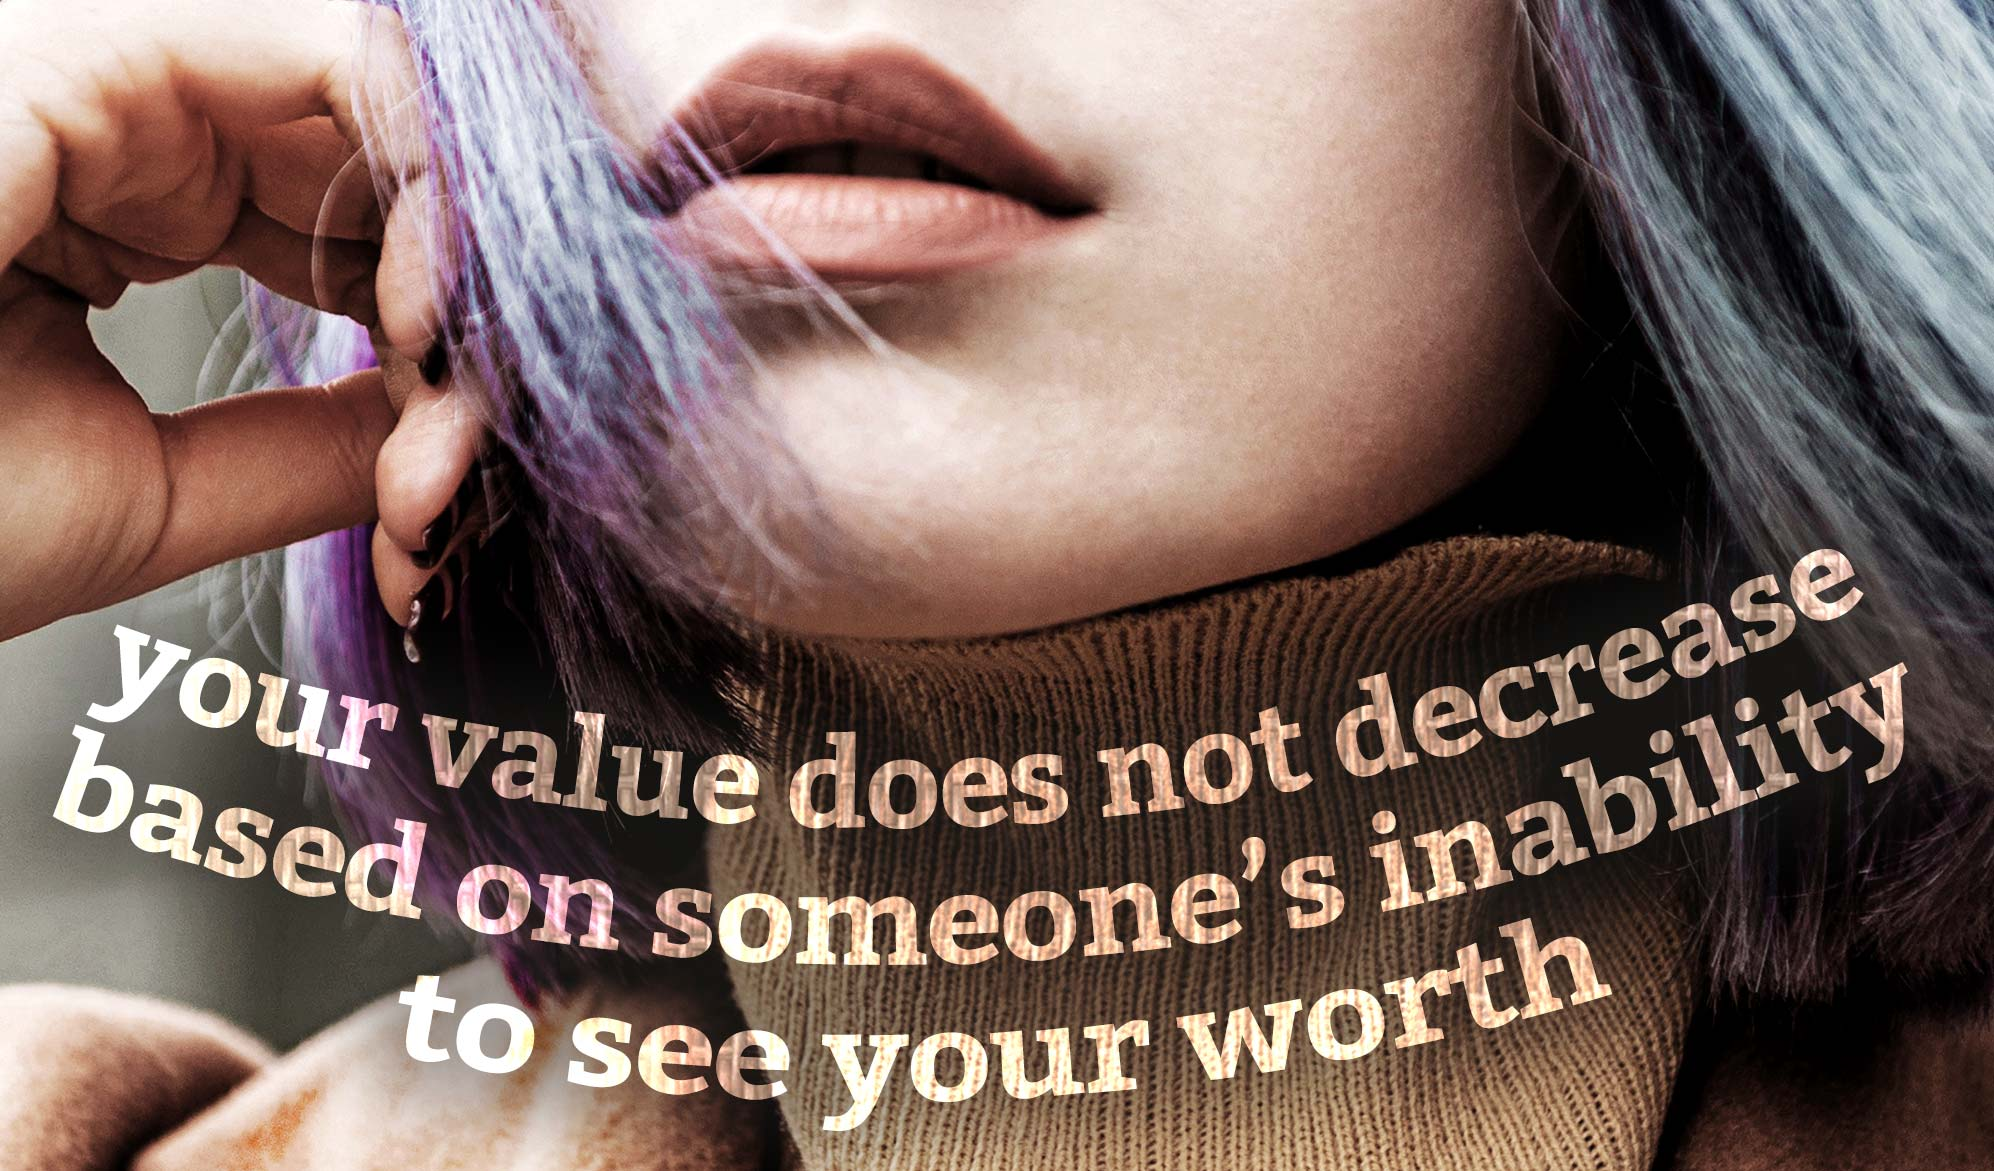 daily inspirational quote image: a woman's face, with lipstick and purple hair